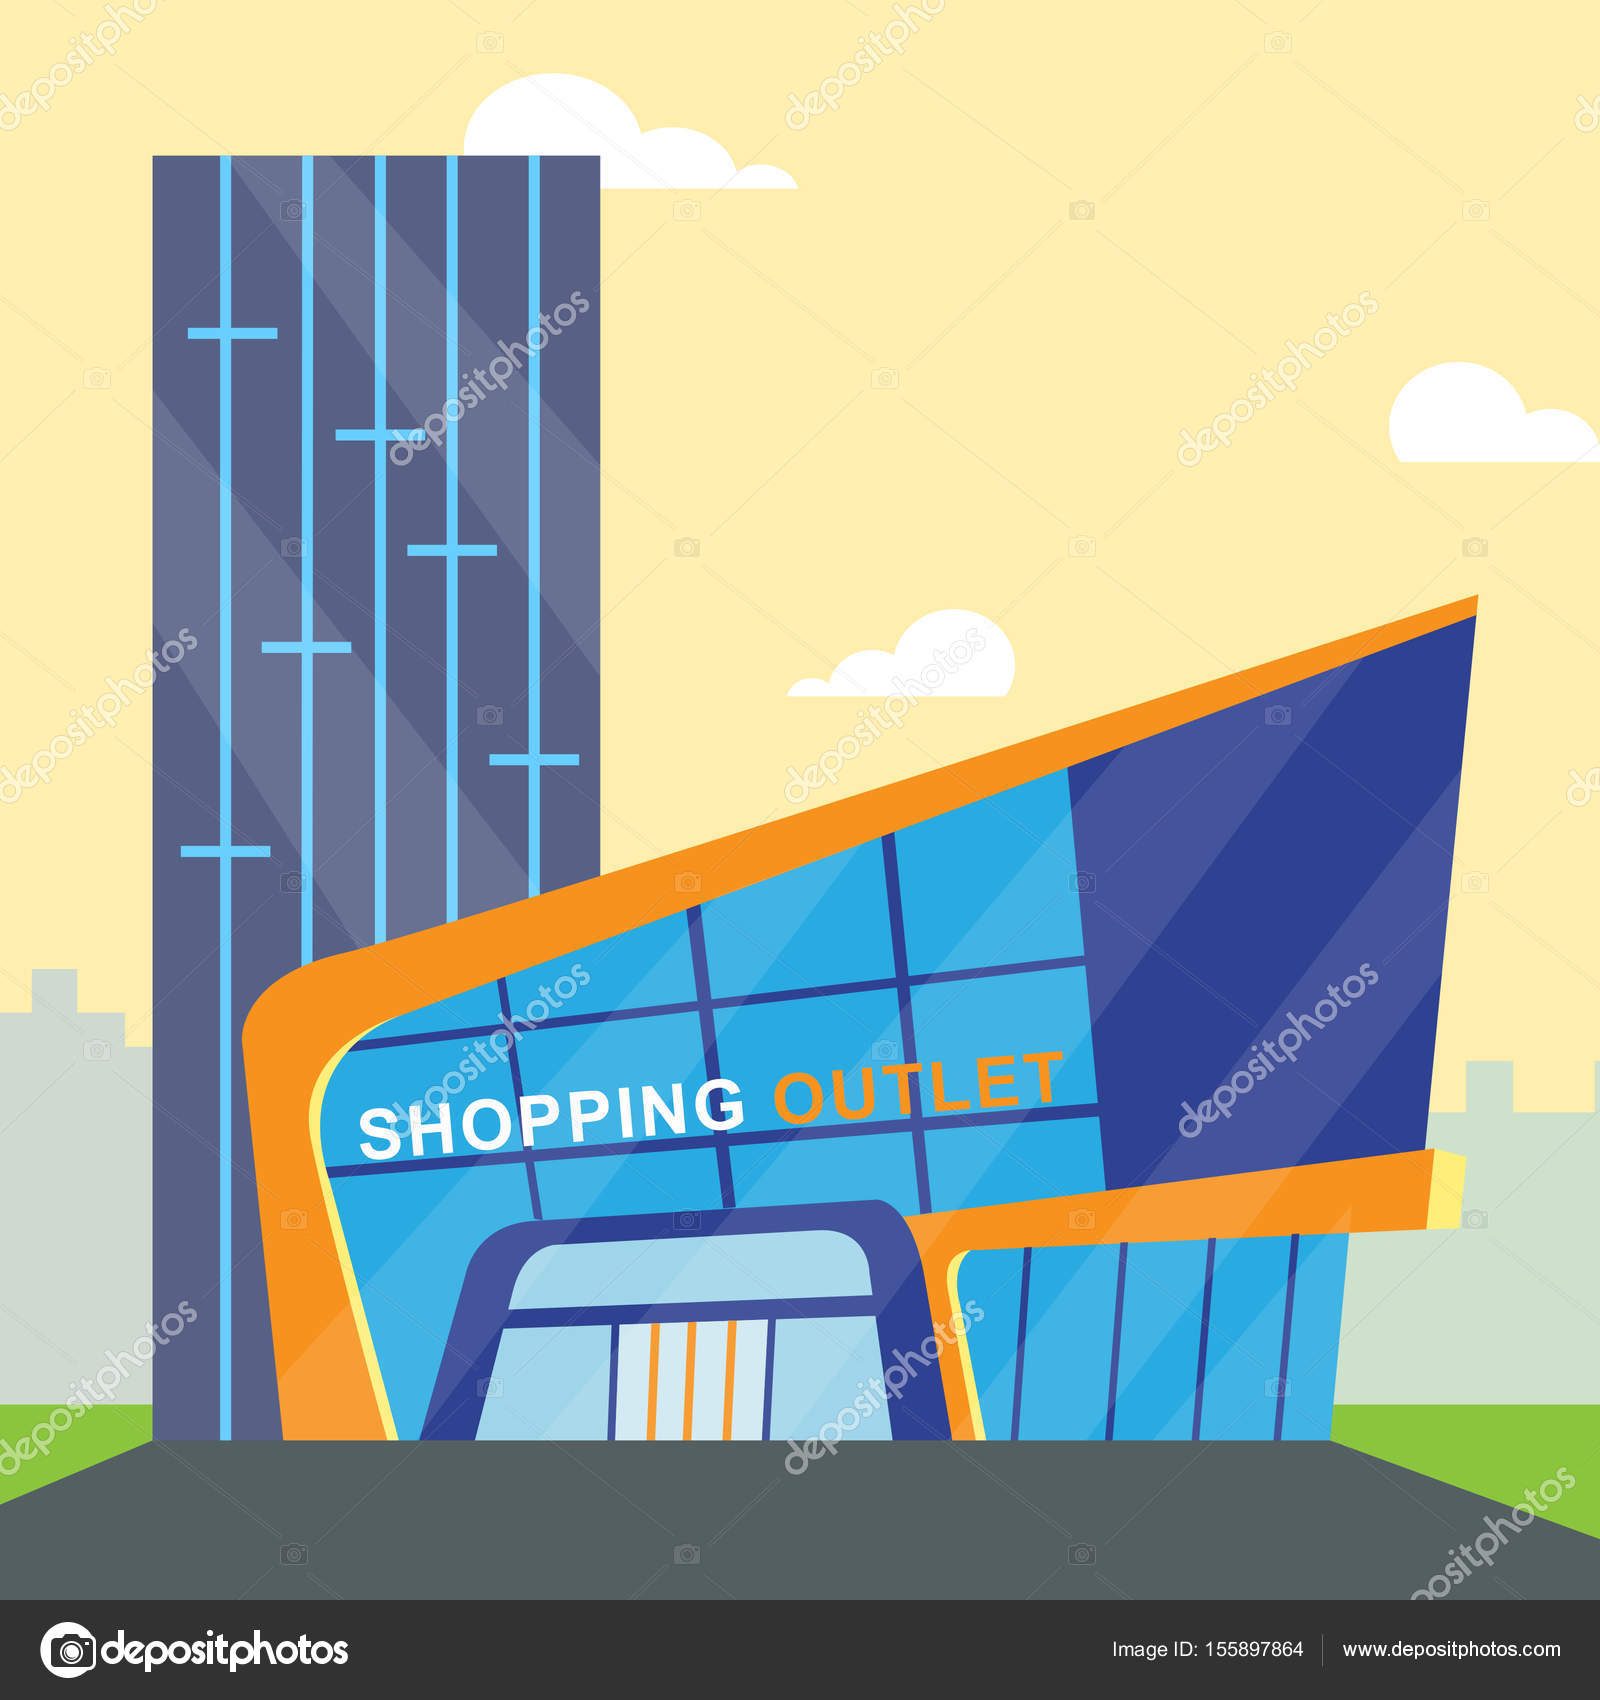 Shopping Outlet Meaning Retail Commerce 3d Illustration Stock